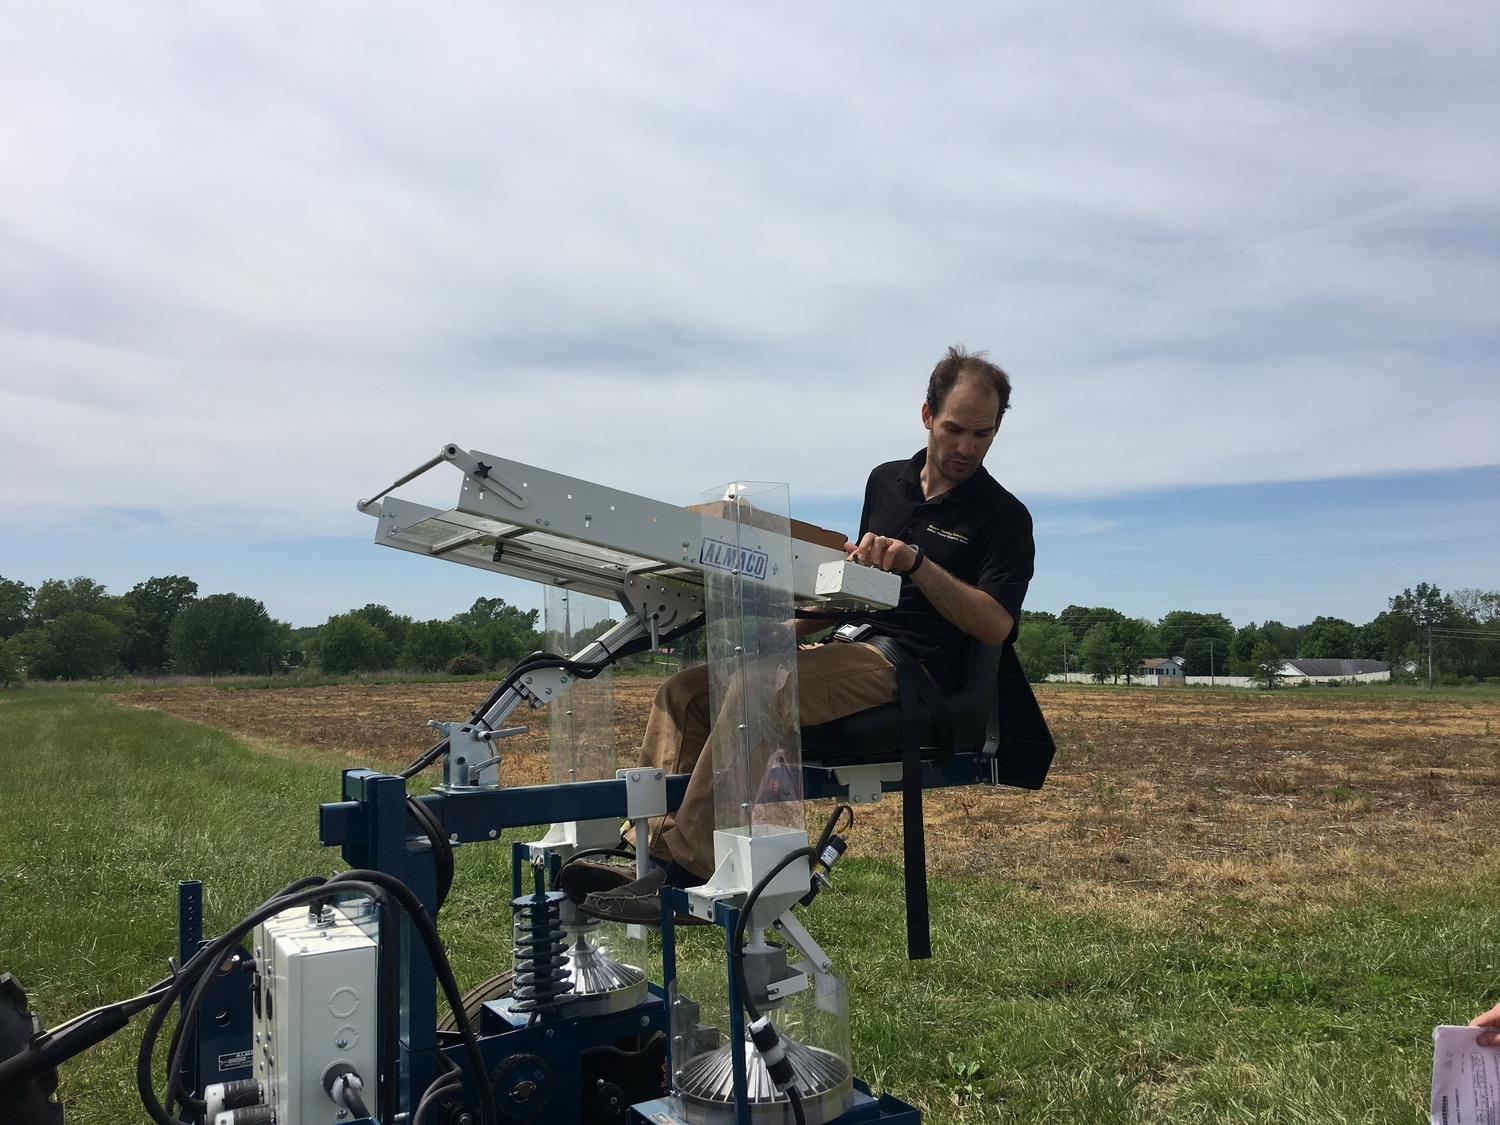 Professor Tim Beissinger on a tractor during the planting phase of the experiment